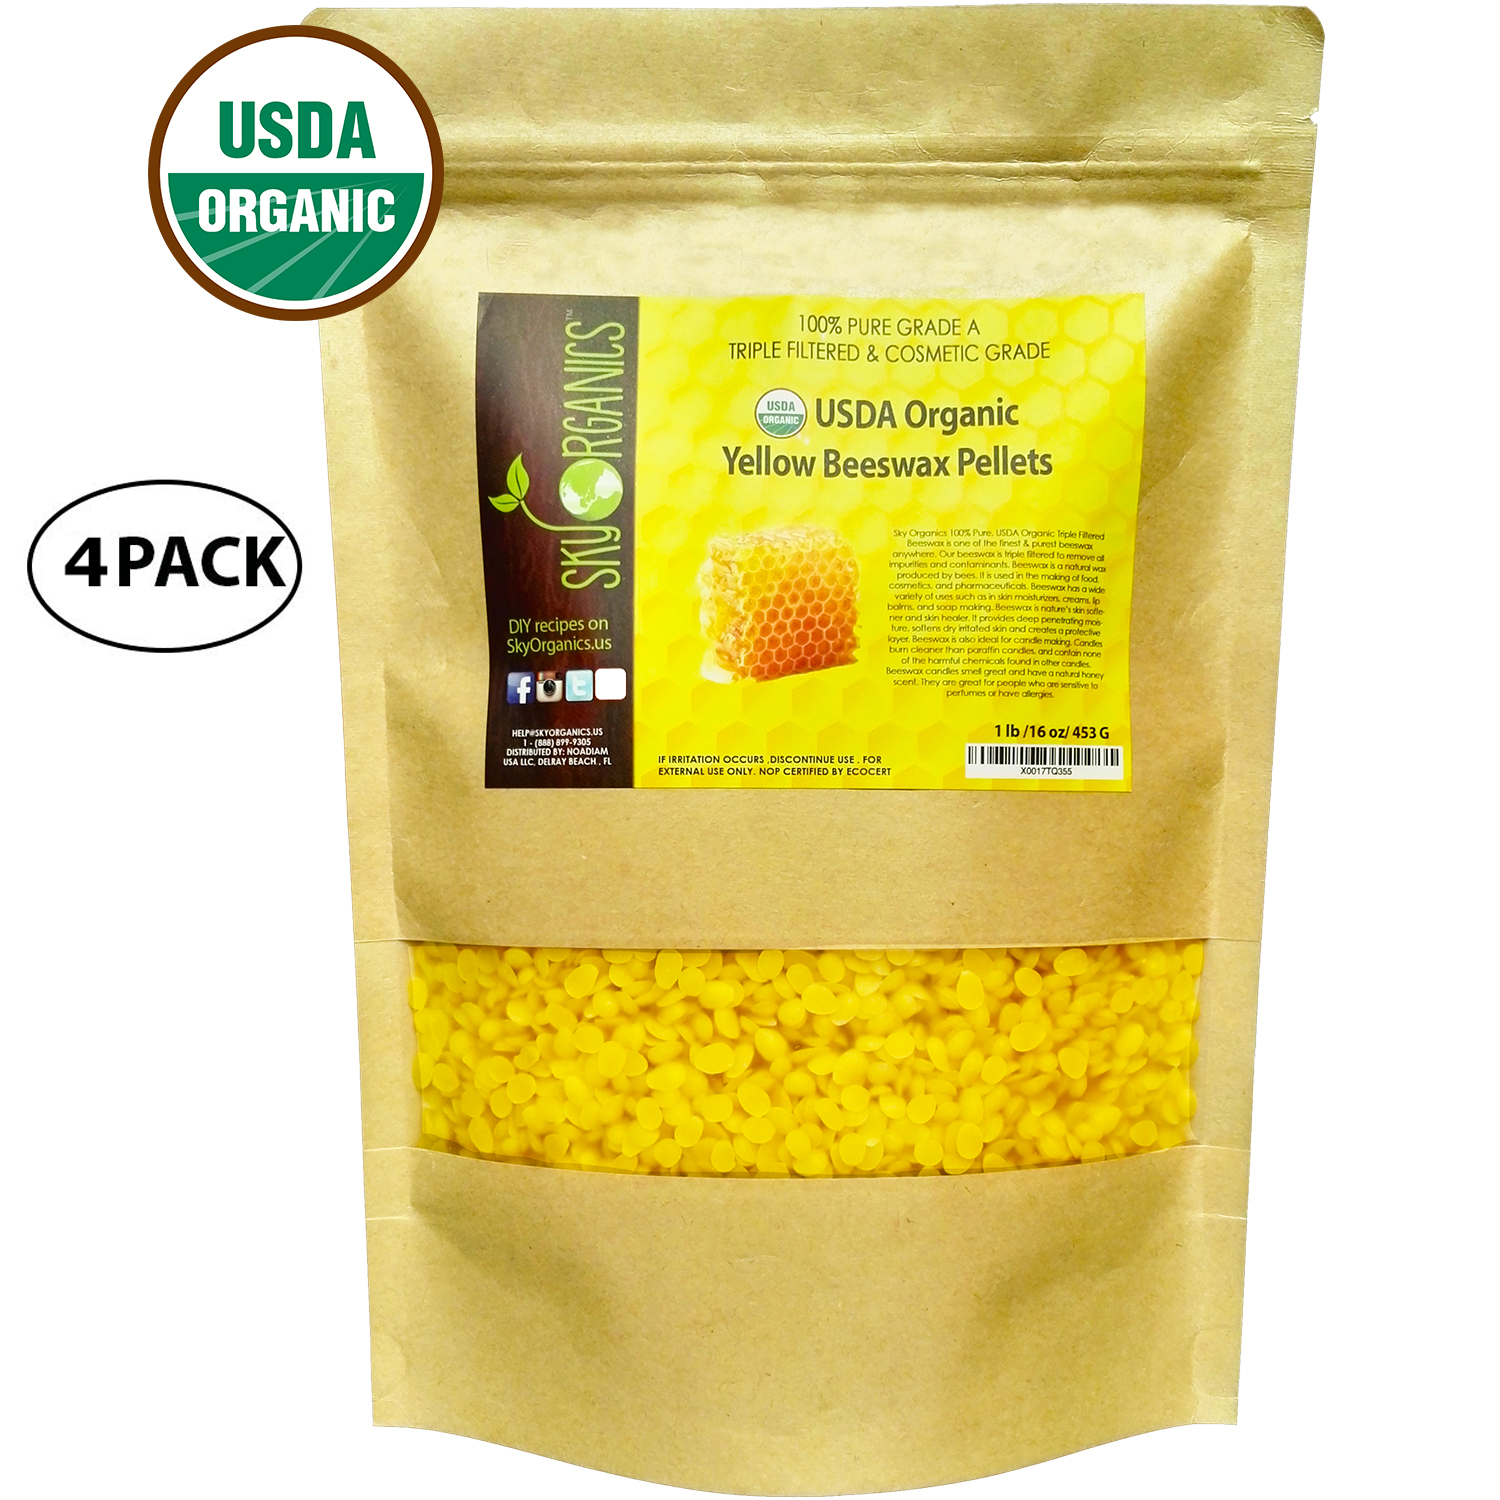 USDA Organic Yellow Beeswax Pellets by Sky Organics (1lb) (4 Pack) -Superior Quality Pure Bees Wax No Toxic Pesticides, Chemicals 3x... by